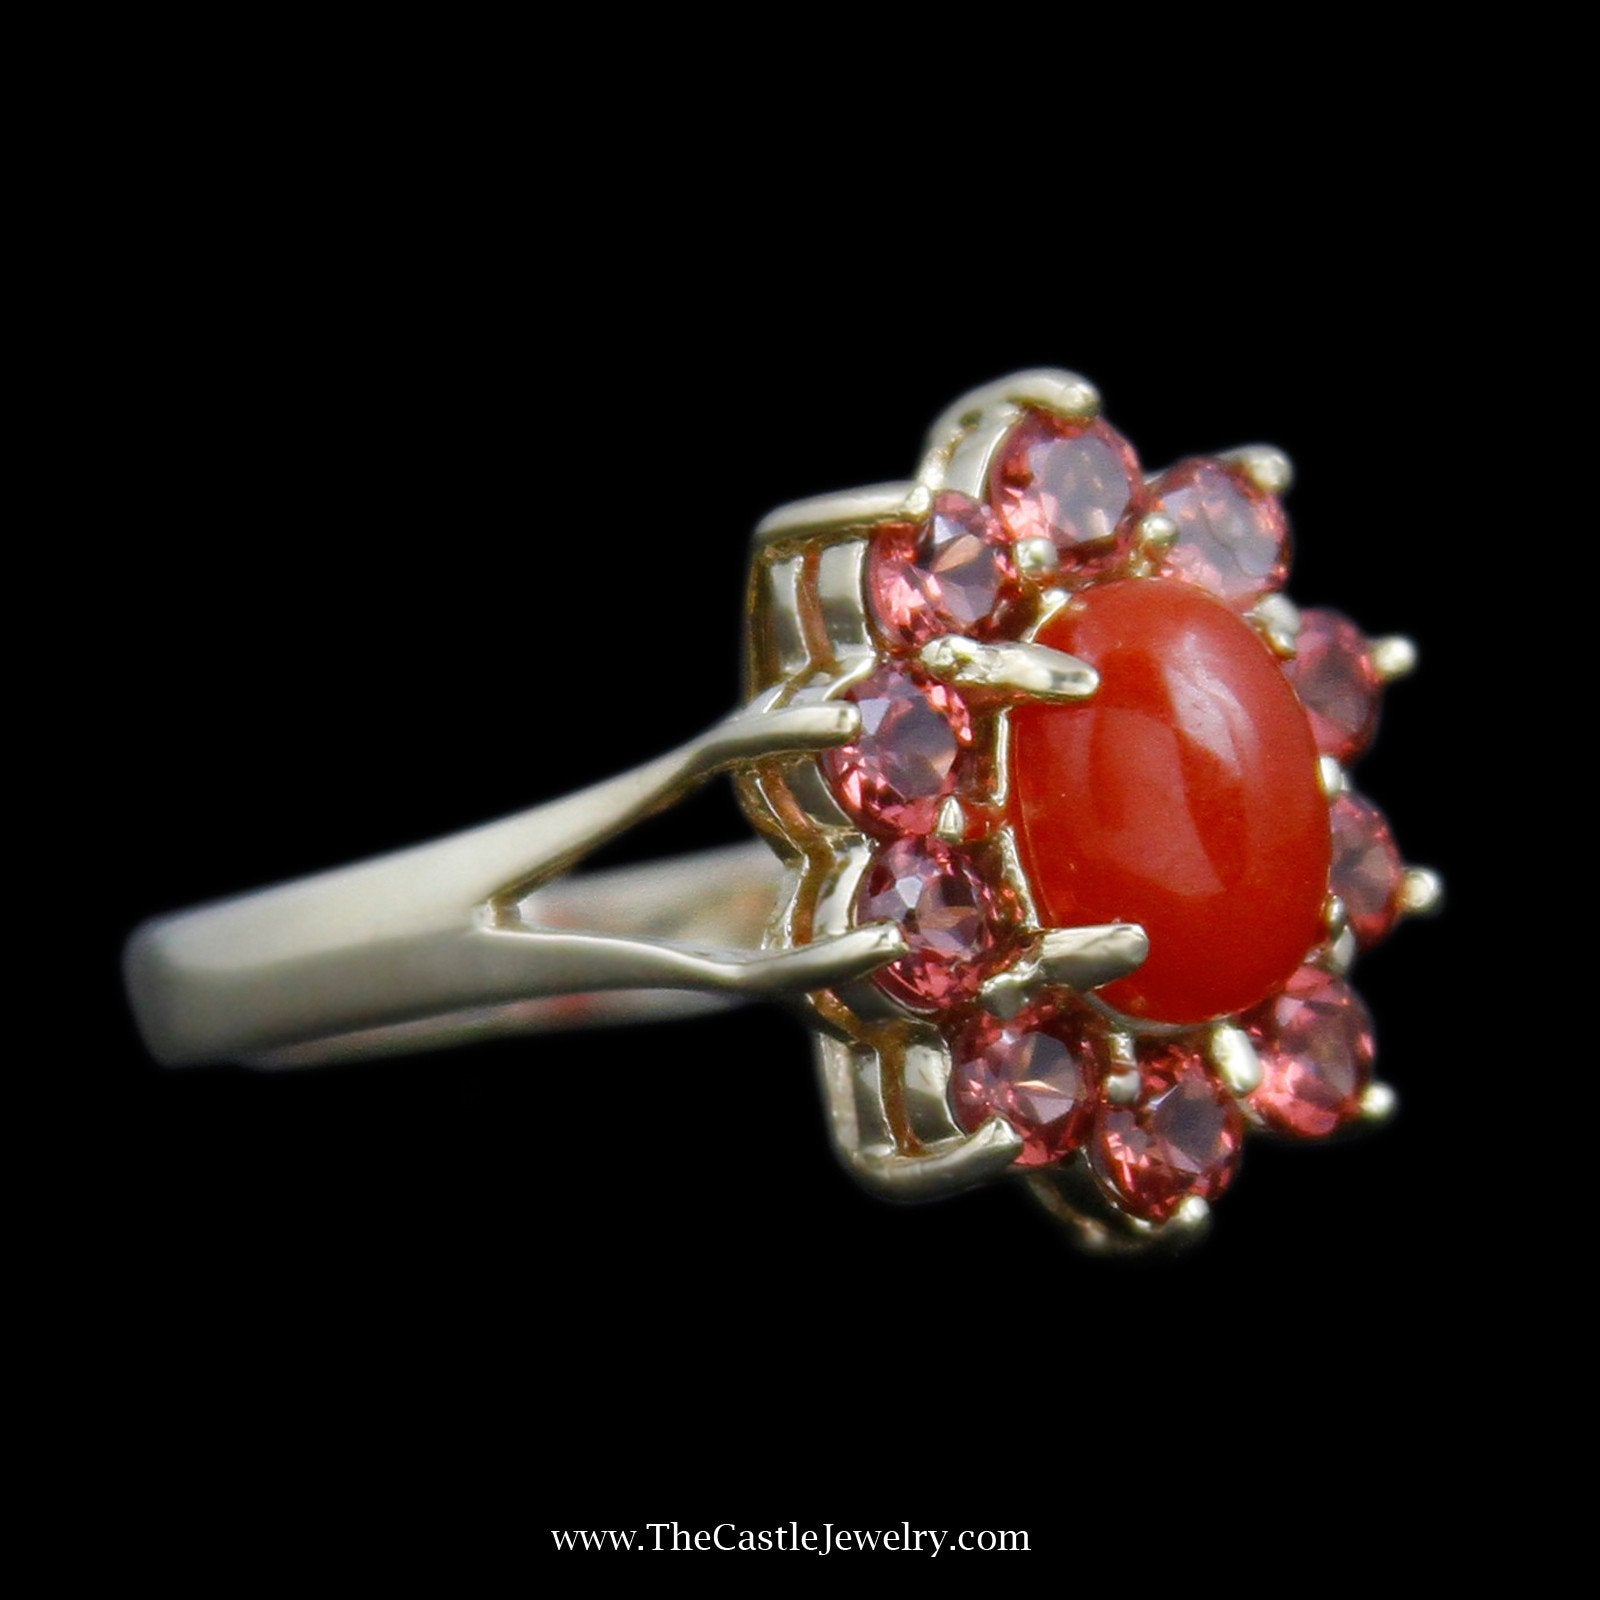 Lovely Oval Cabochon Carnelian Ring with Round Garnet Bezel & Split Design Sides-2